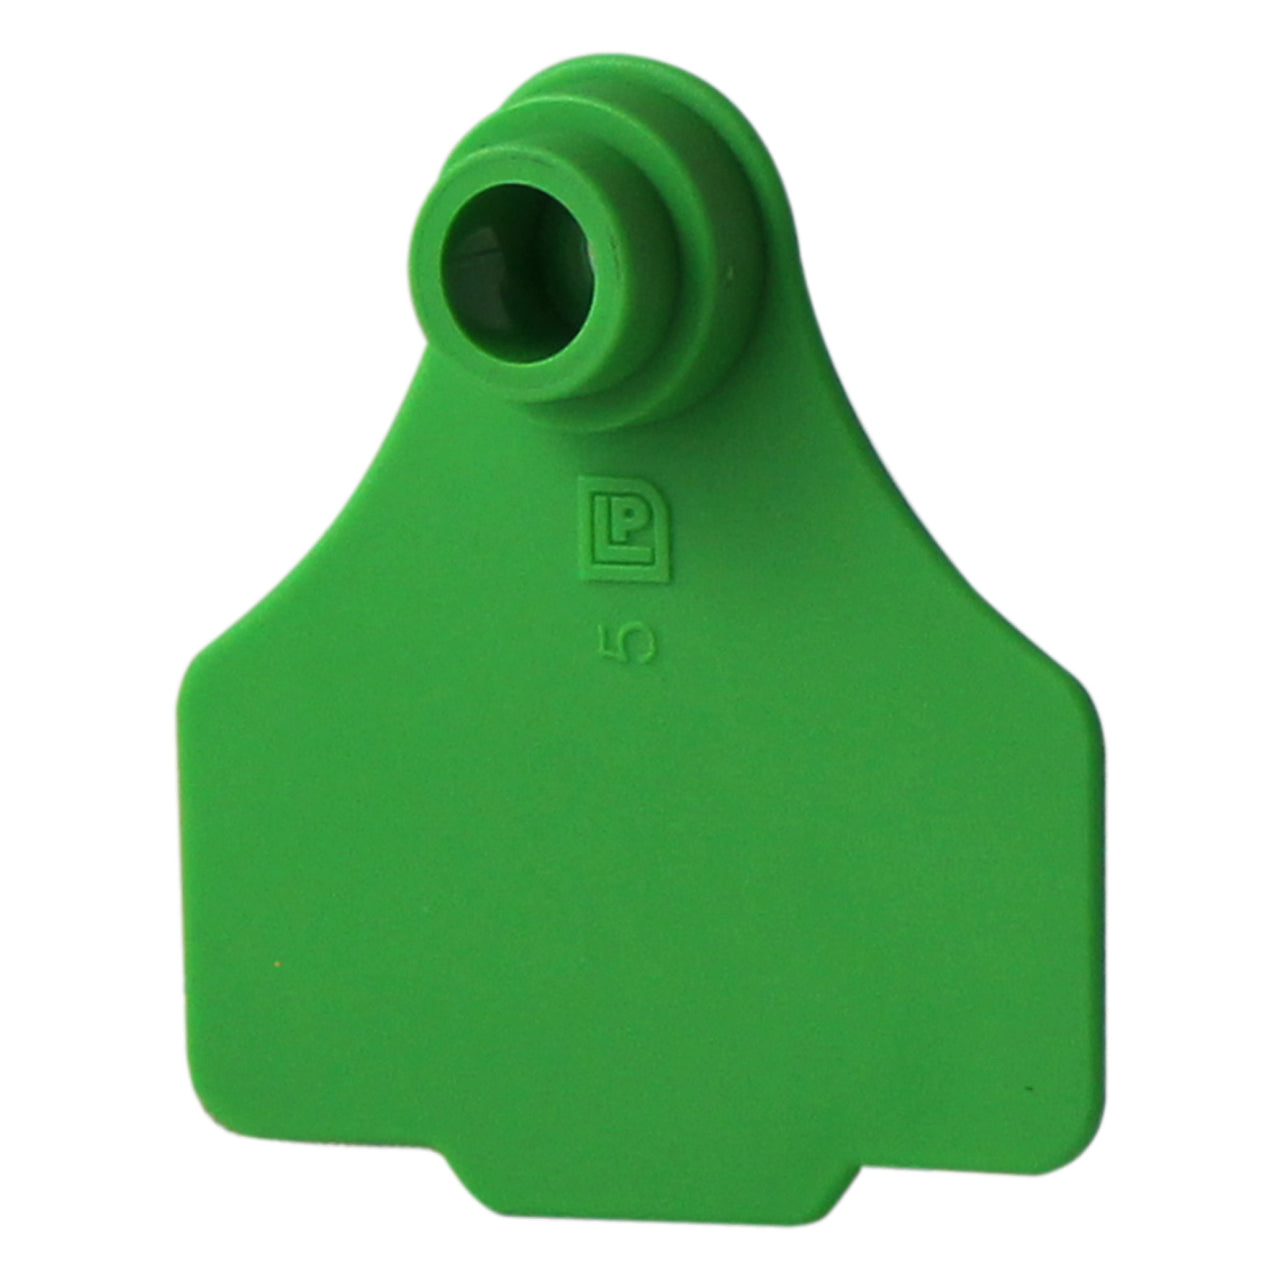 Medium 2Pc Green - 25S - Green - Ear Tags Leader Products - Canada